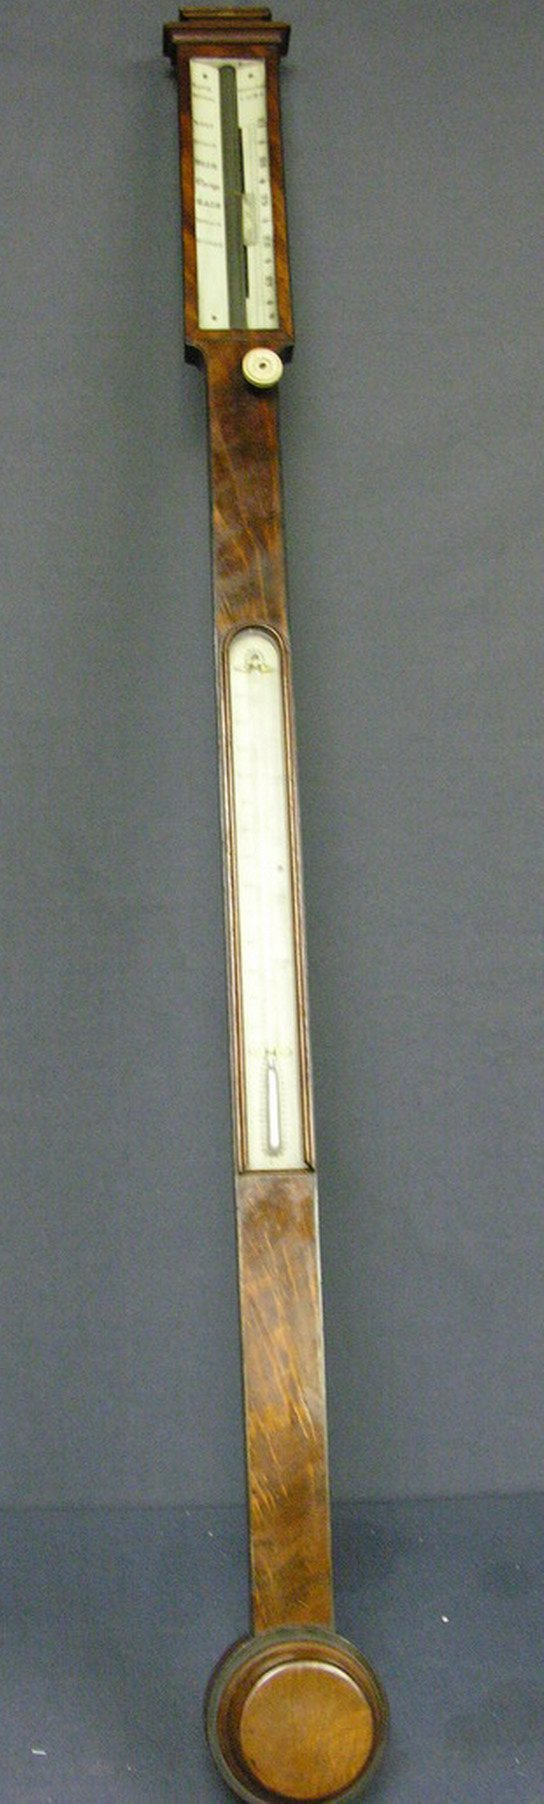 1017: VICTORIAN BAROMETER THERMOMETER